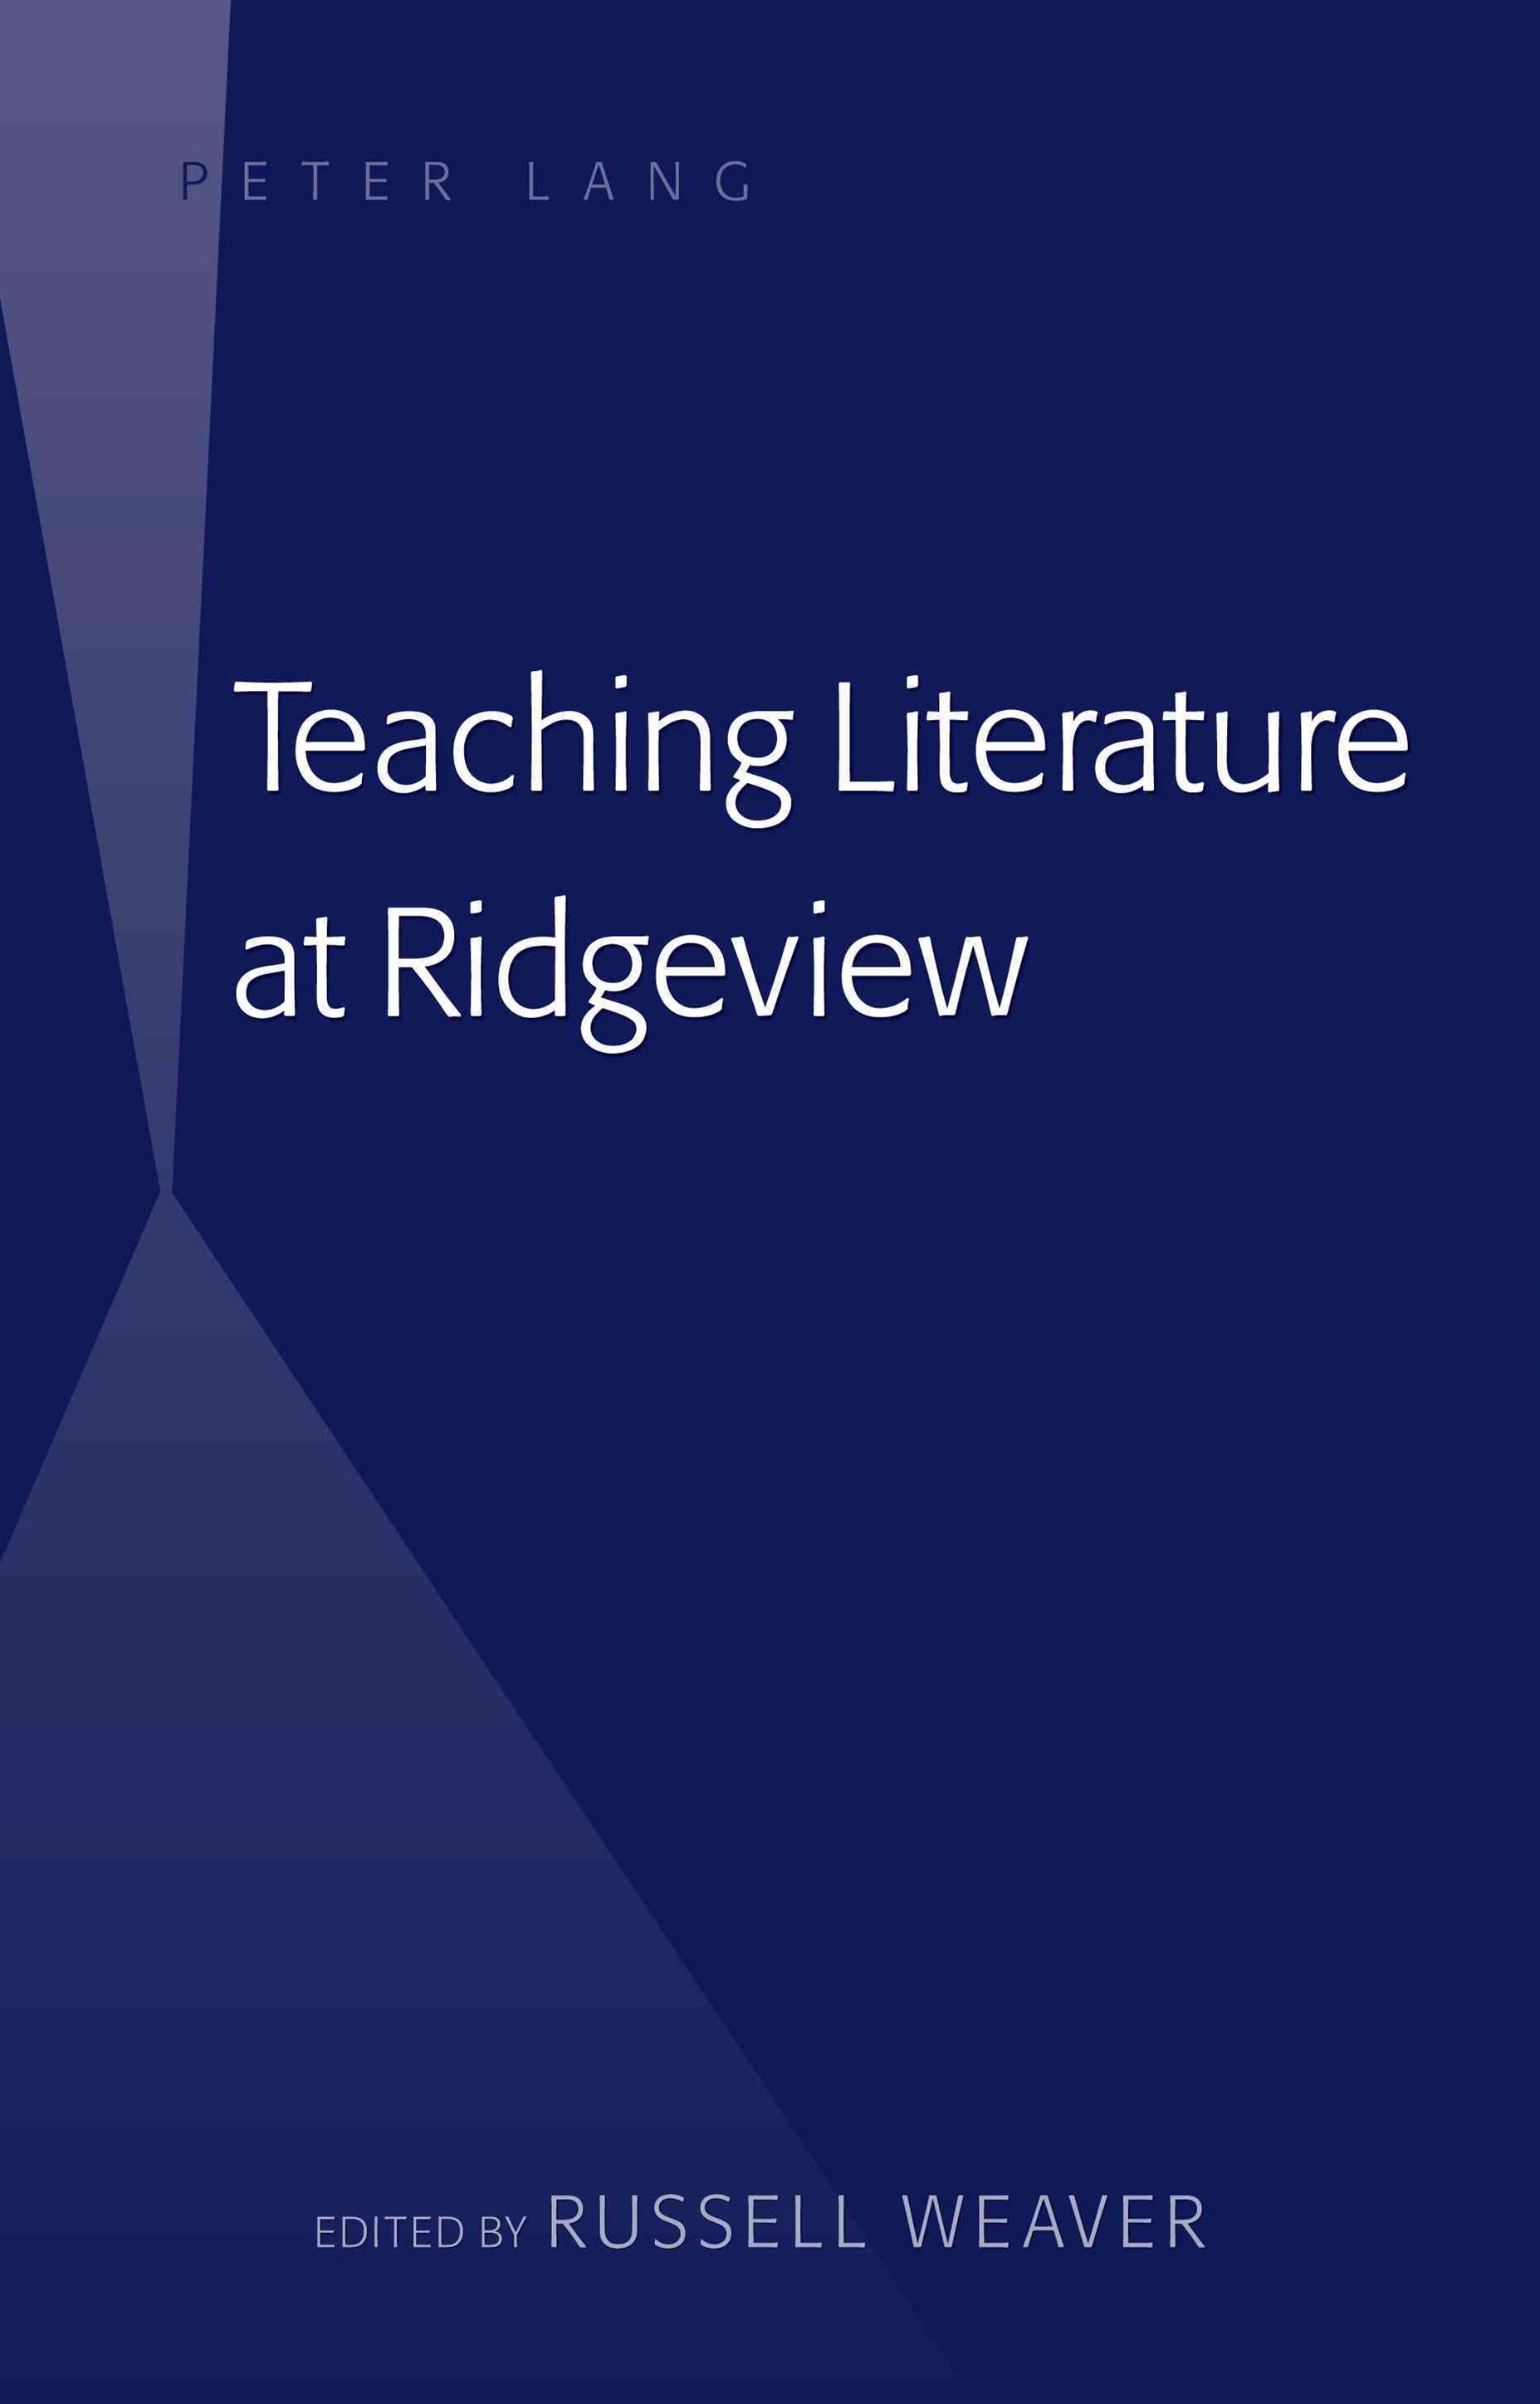 Teaching Literature at Ridgeview